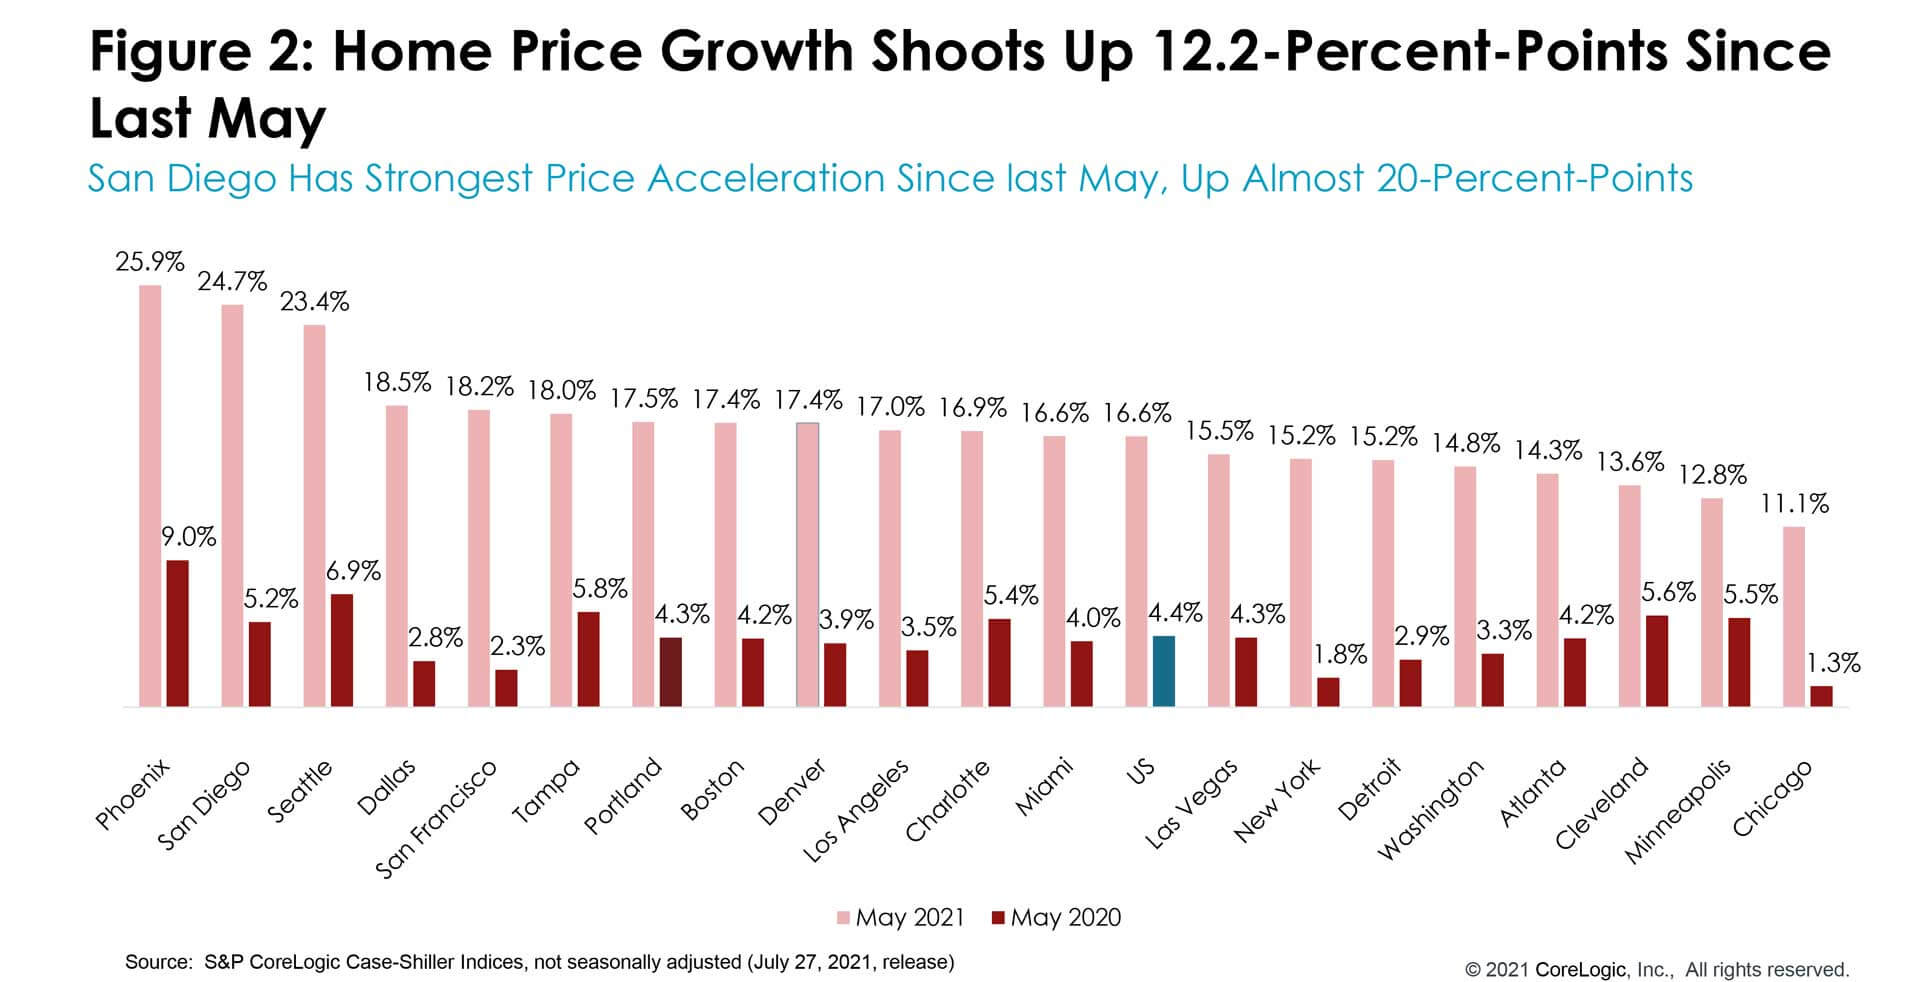 Figure 2: Home Price Growth Shoots Up 12.2-Percent-Points Since Last May